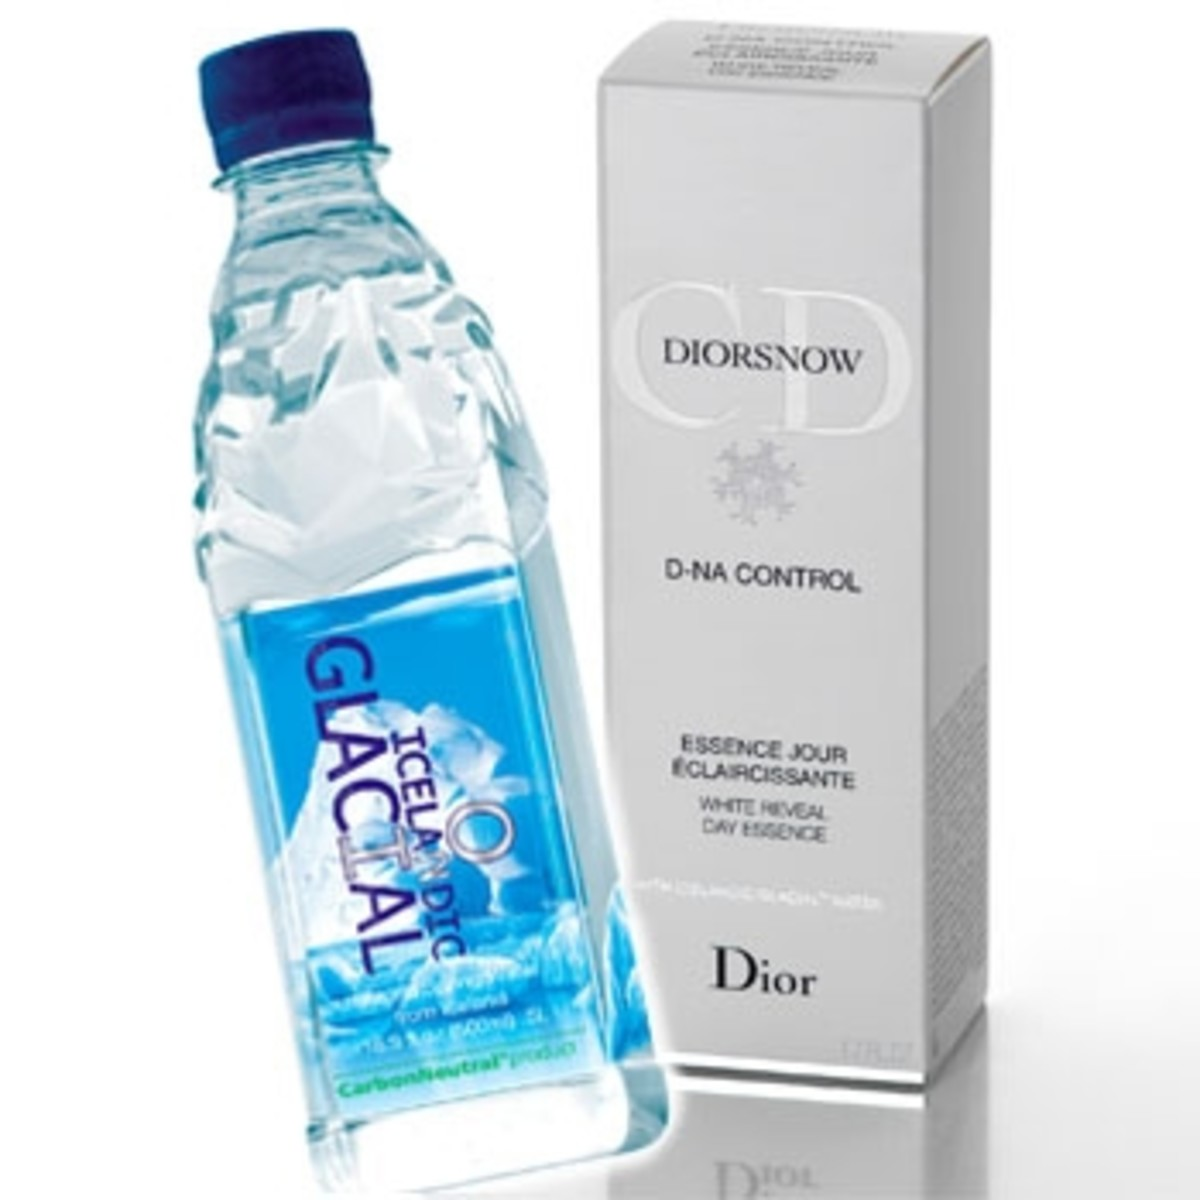 Christian-Dior-Icelandic-Glacial-Water